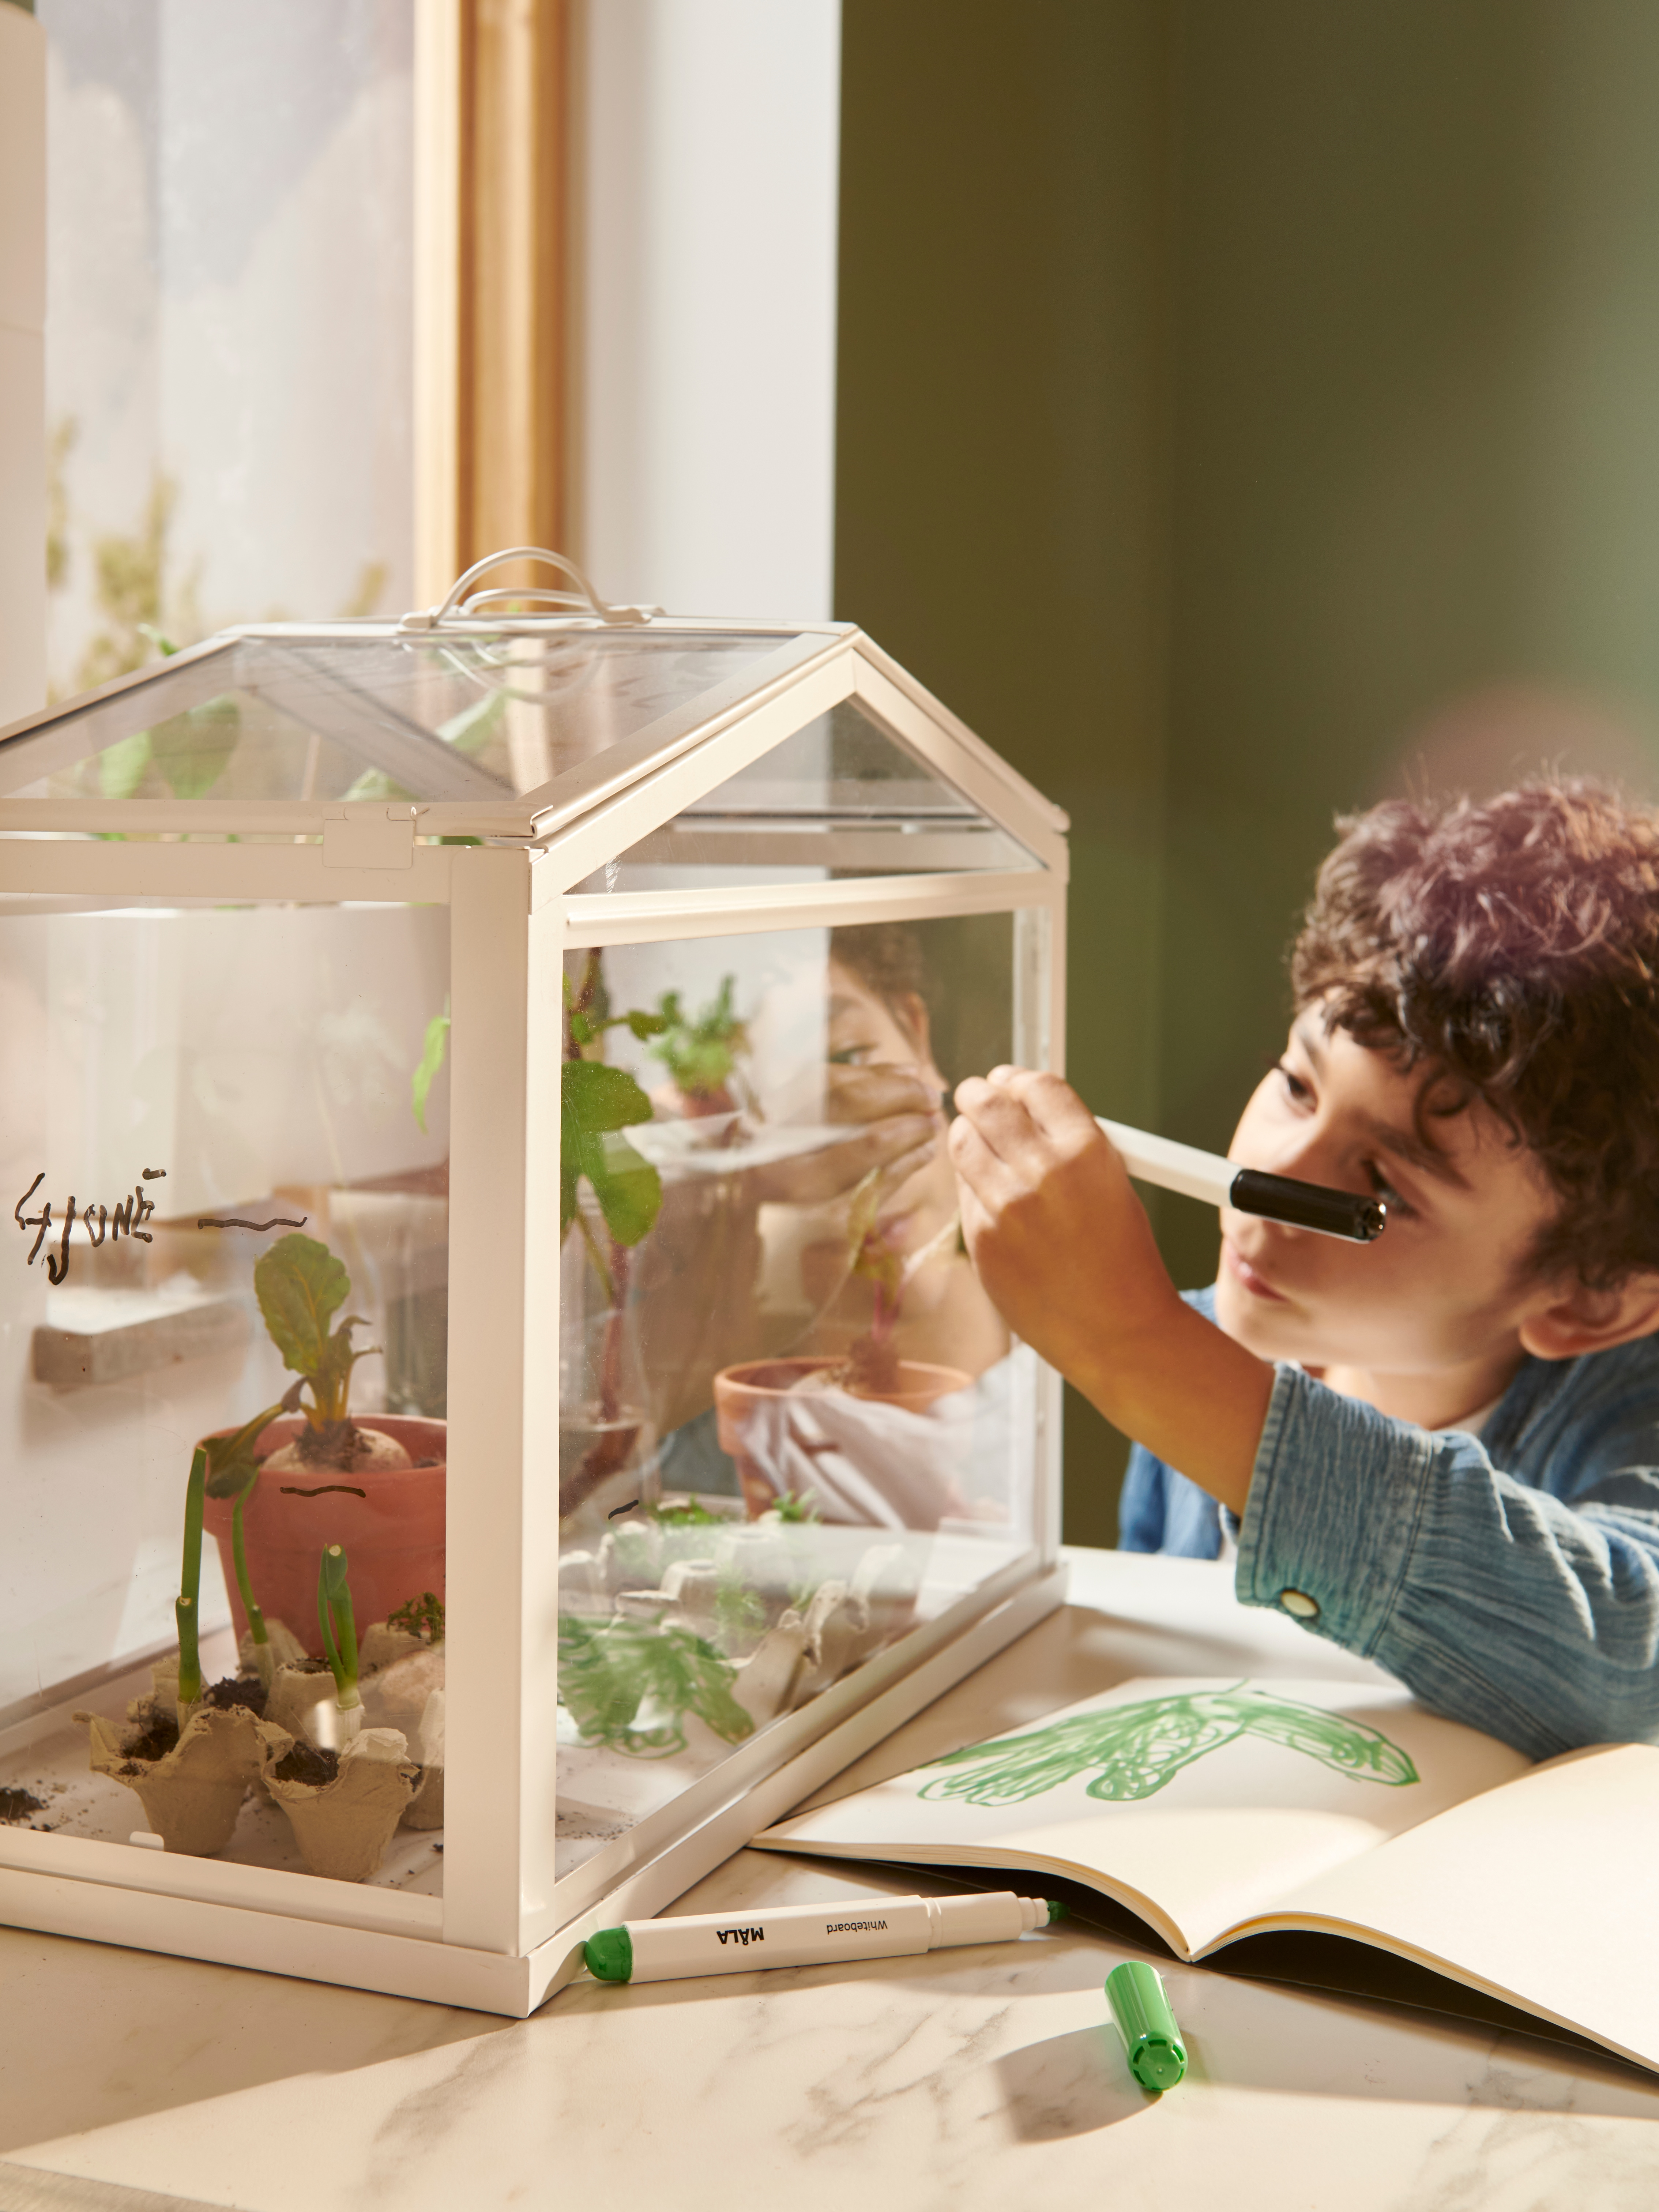 Young boy indoors writing with whiteboard pen on miniature glass greenhouse with potted plants inside.